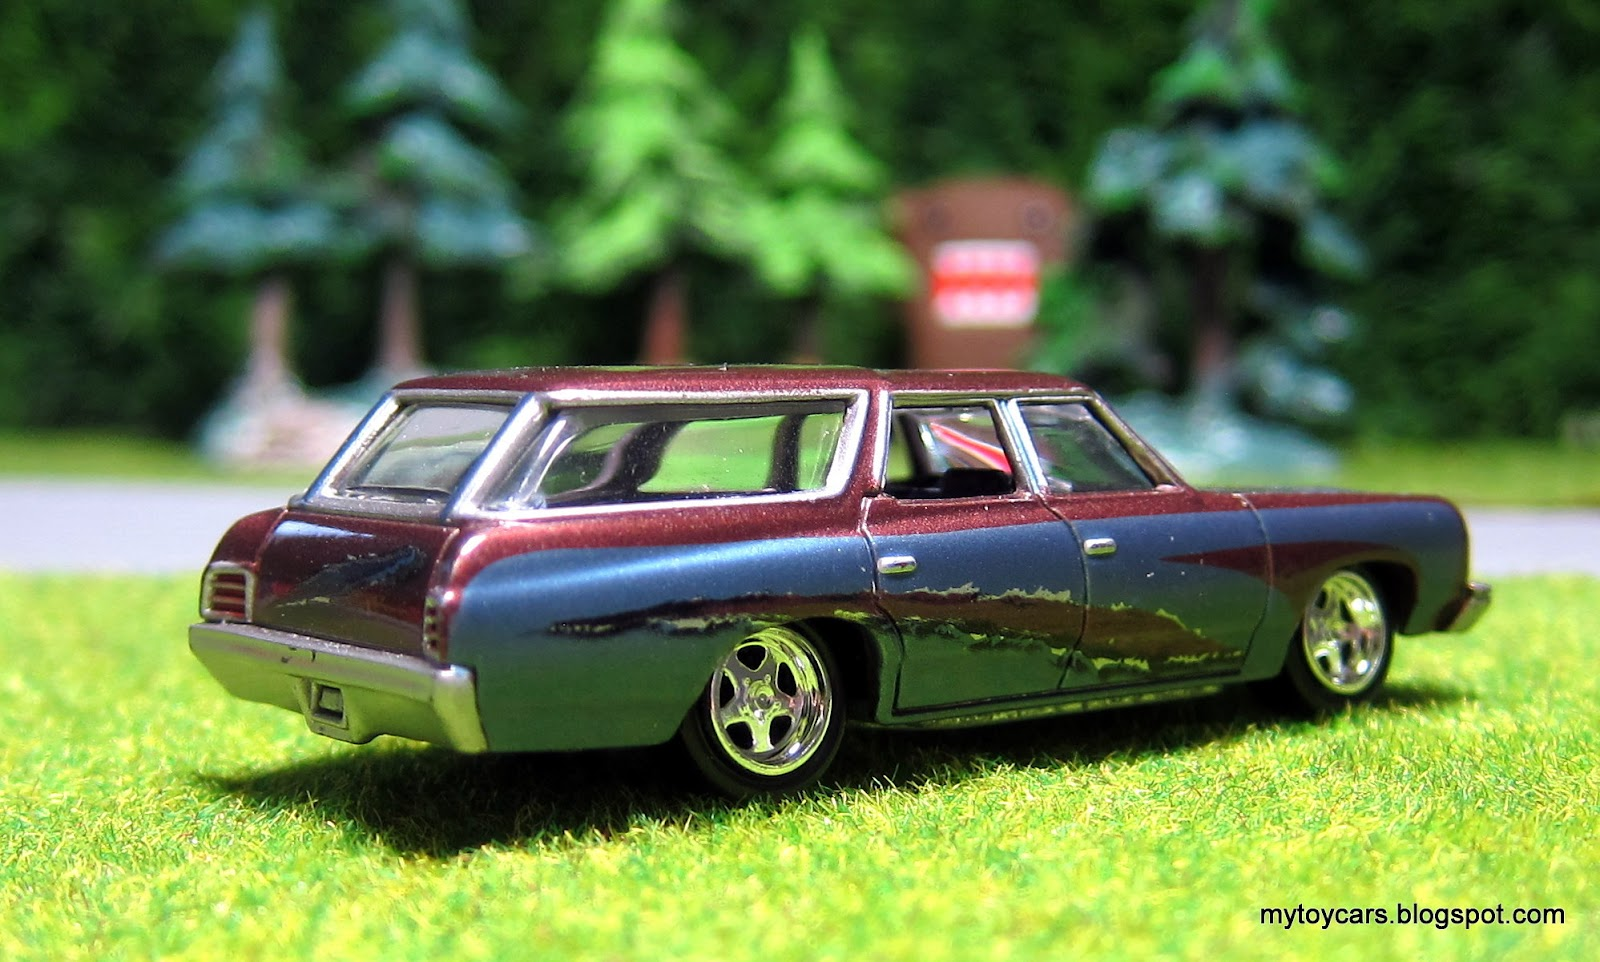 Mytoycars Johnny Lightning 1973 Chevrolet Caprice Wagon 1966 Chevy Before Hot Wheels Was One Of The Few Die Cast Makers That Took An Interest In Making Station Wagons This